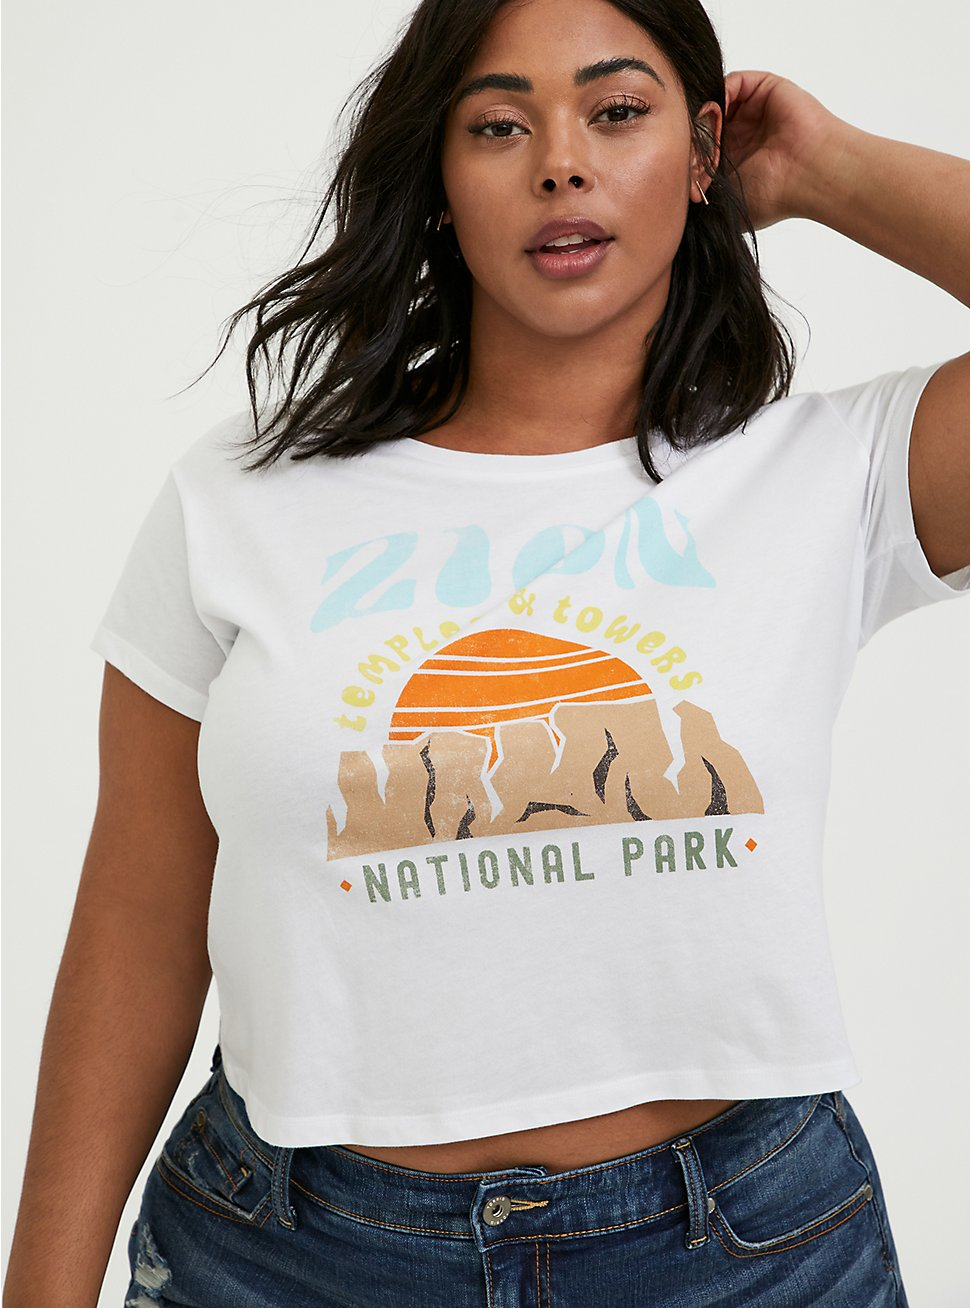 Plus Size Zion Temples & Towers White Crop Crew Tee, CLOUD DANCER, hi-res